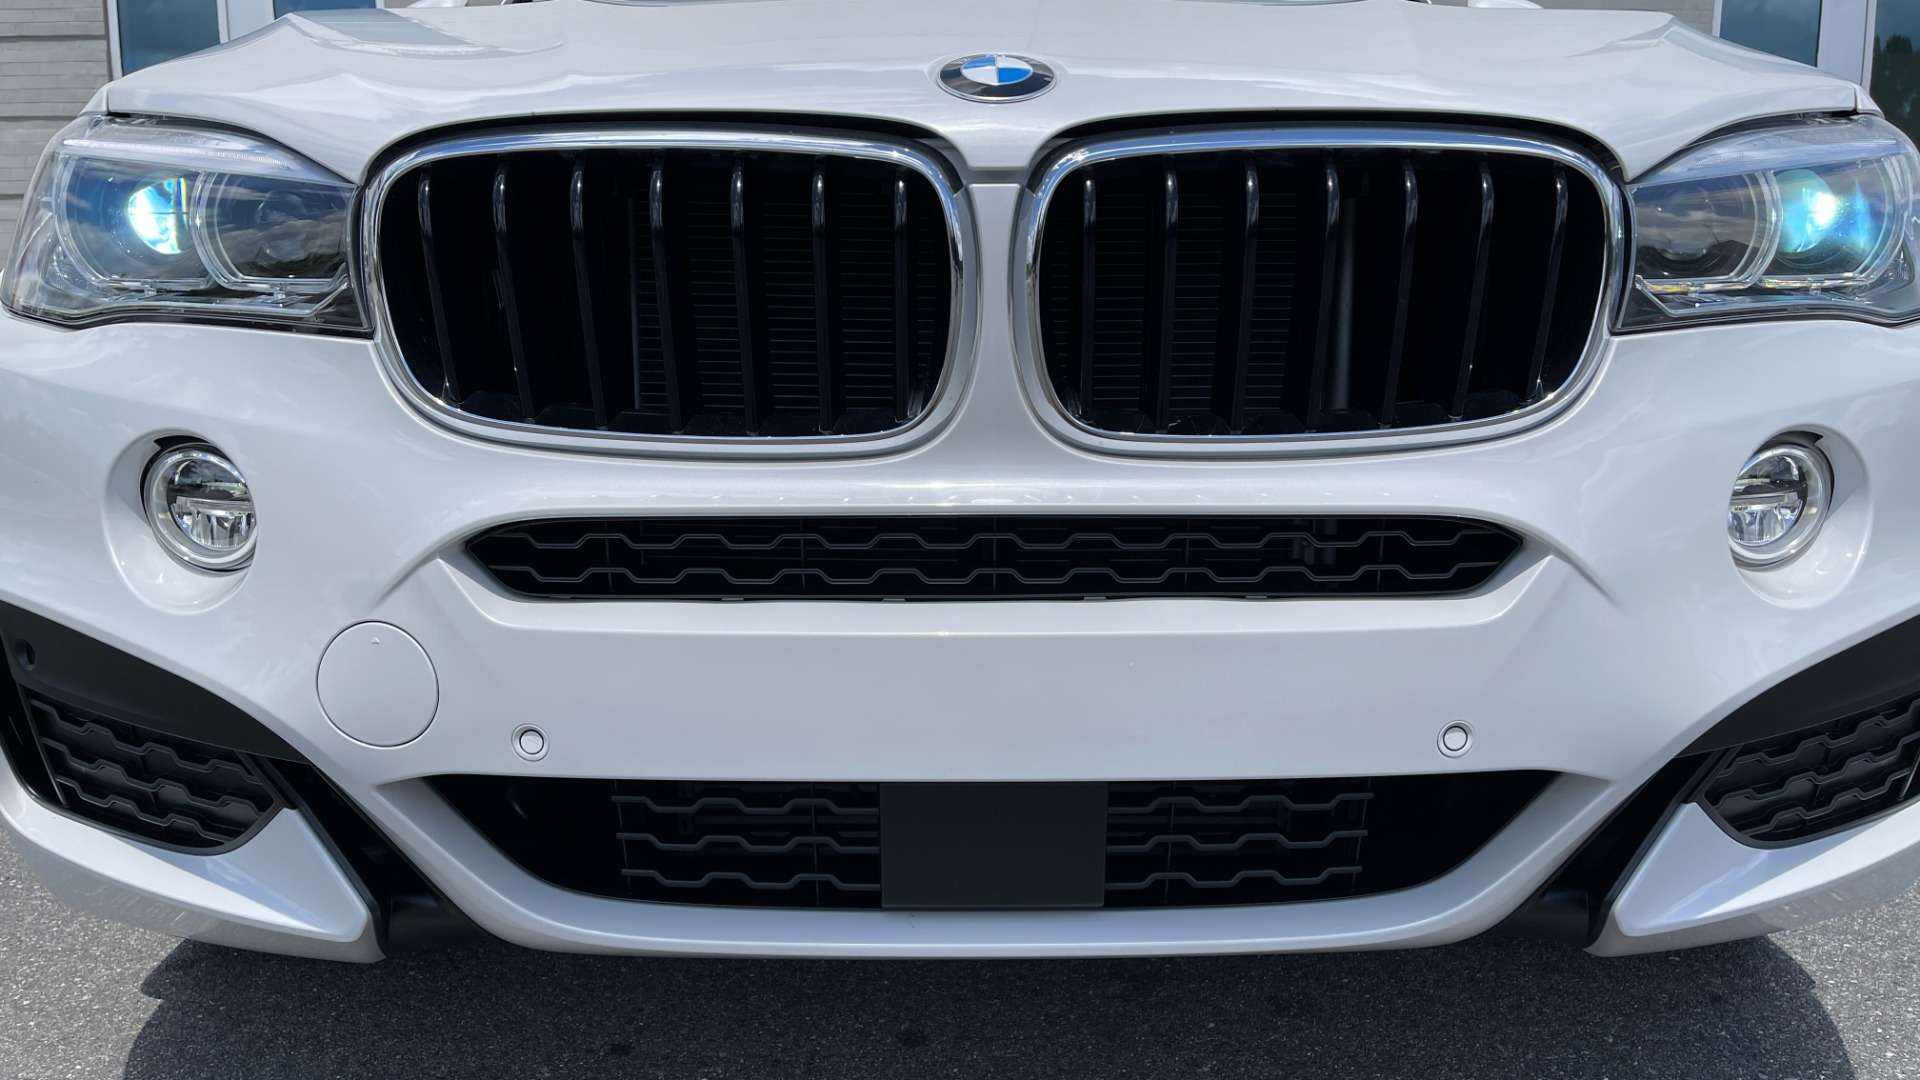 Used 2018 BMW X6 XDRIVE35I M-SPORT / NAV / DRVR ASST PLUS / ADAPT M-SUSP / REARVIEW for sale Sold at Formula Imports in Charlotte NC 28227 15